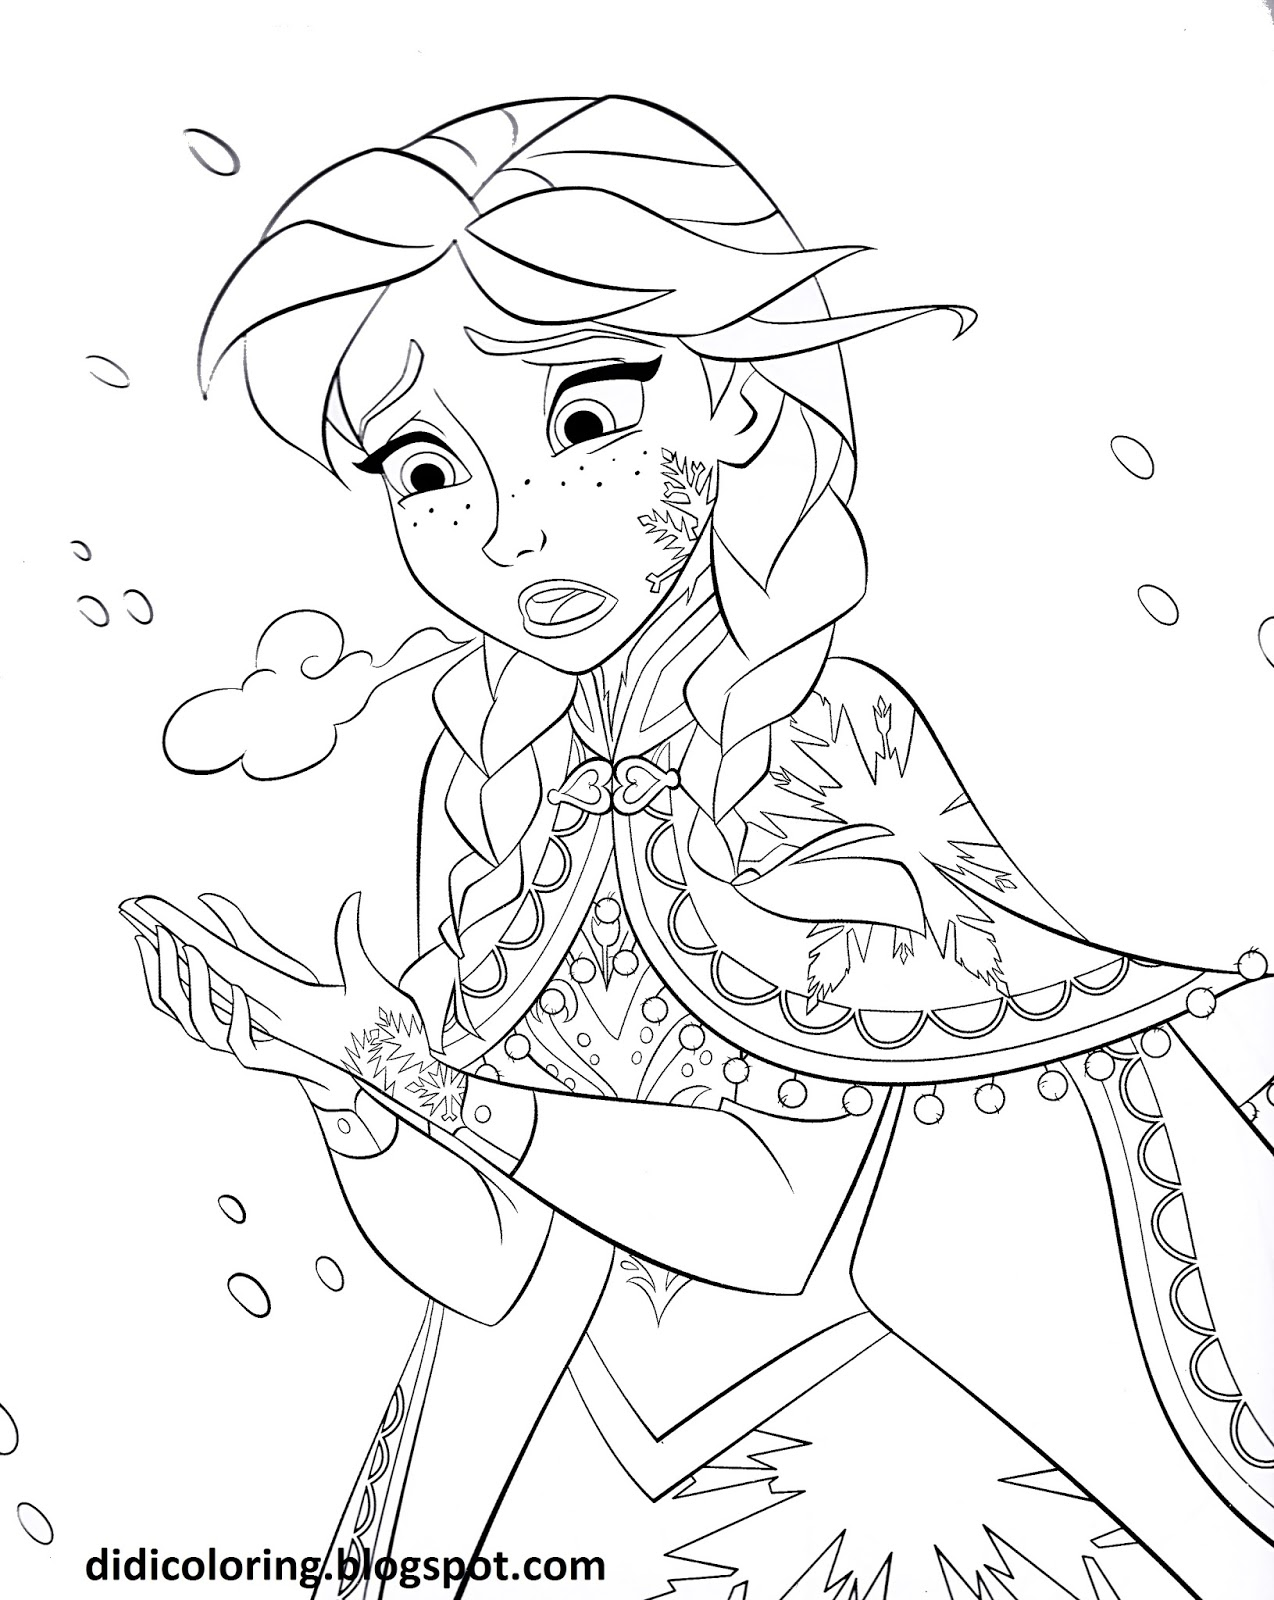 Disney Drawing Frozen At Getdrawings Com Free For Personal Use